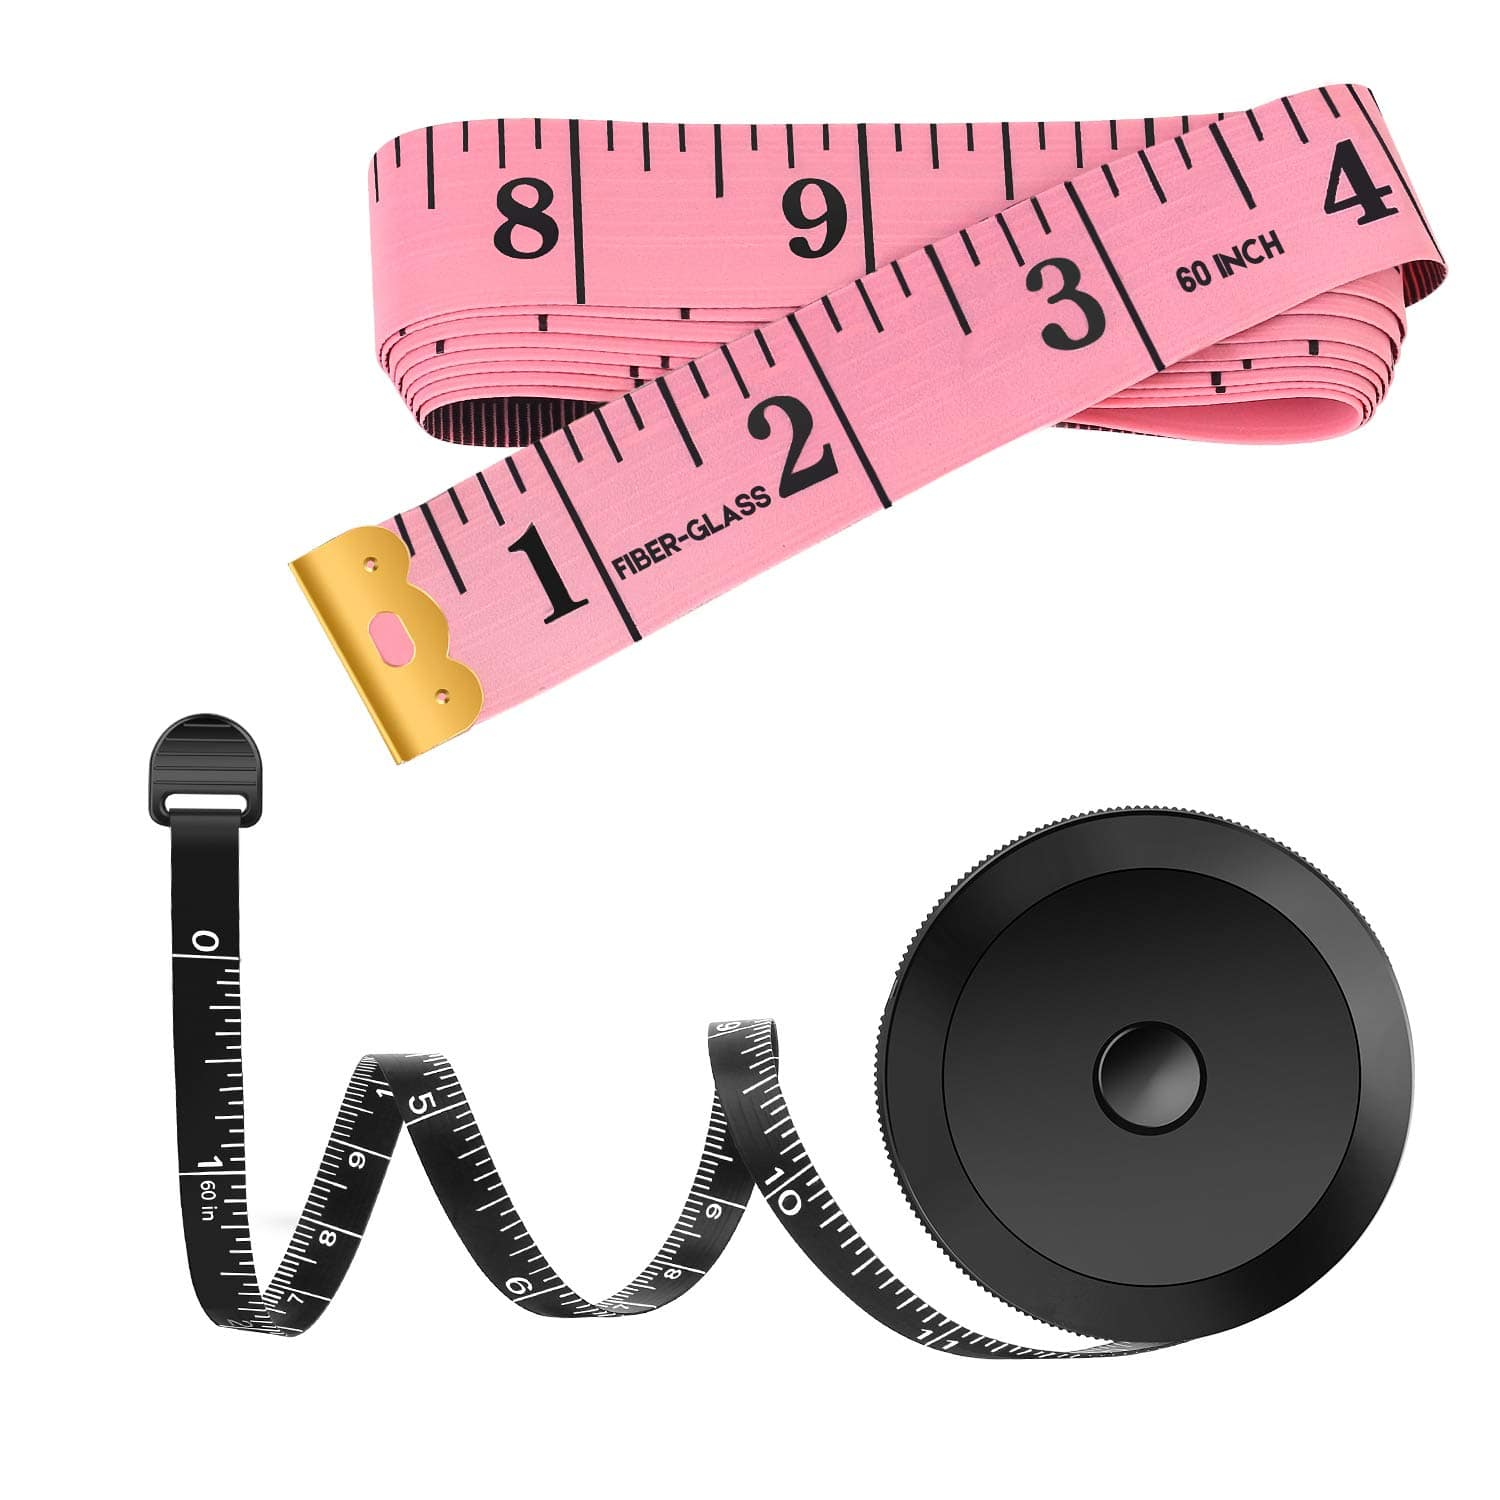 2 Pack Tape Measure $2.95 at Amazon